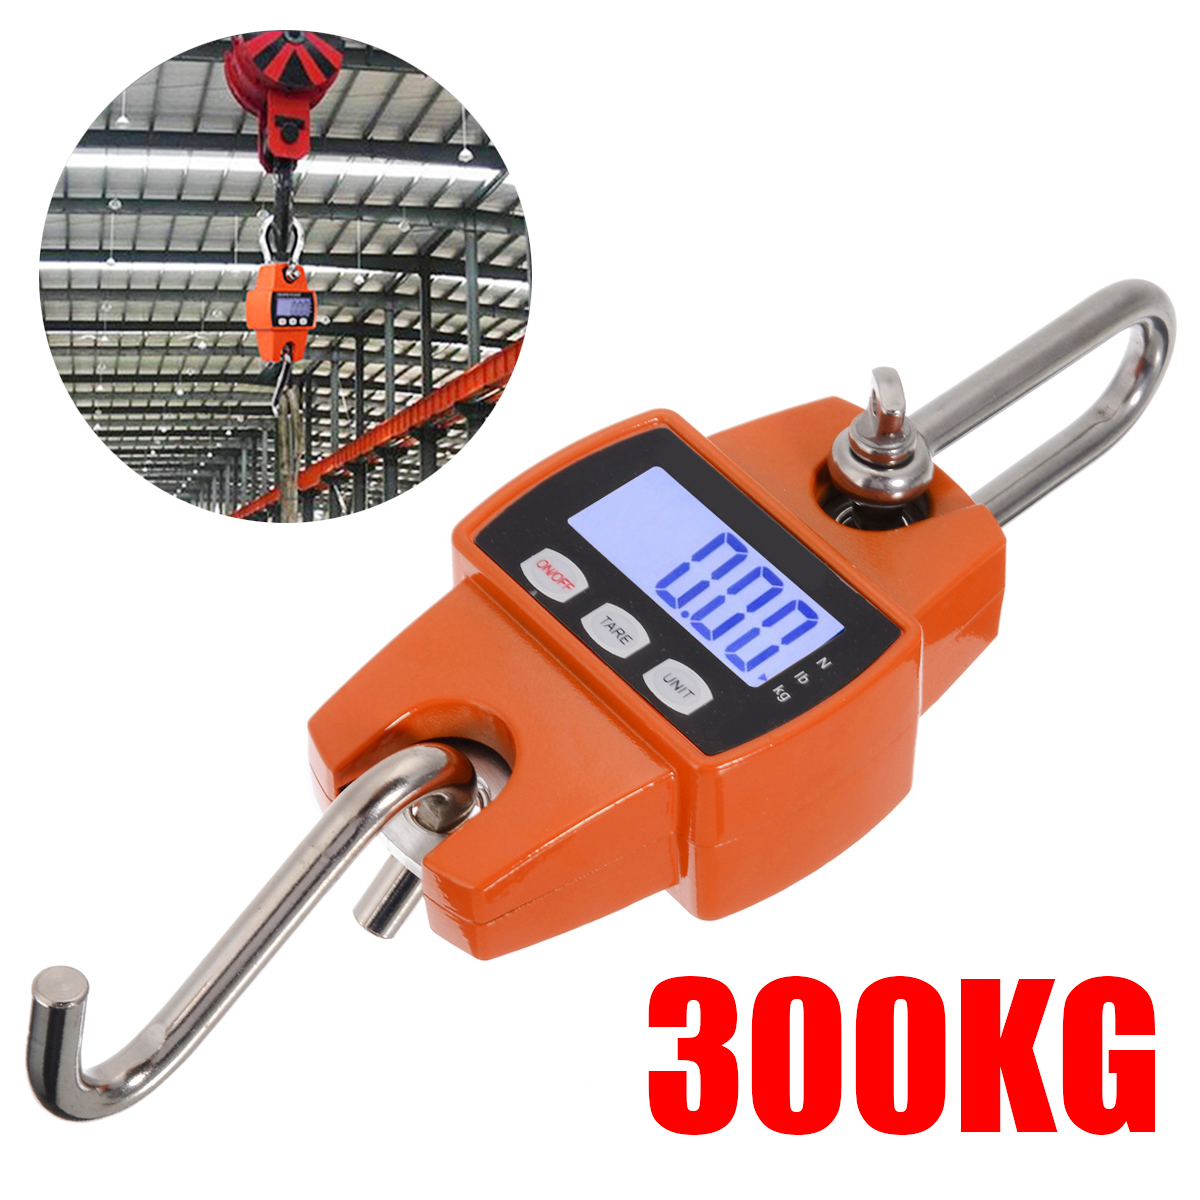 1pc 300kg/600lb LCD Electronic Scale Portable Digital Industrial Crane Scale Heavy Duty Hanging Weighing Hook Scales Baggage